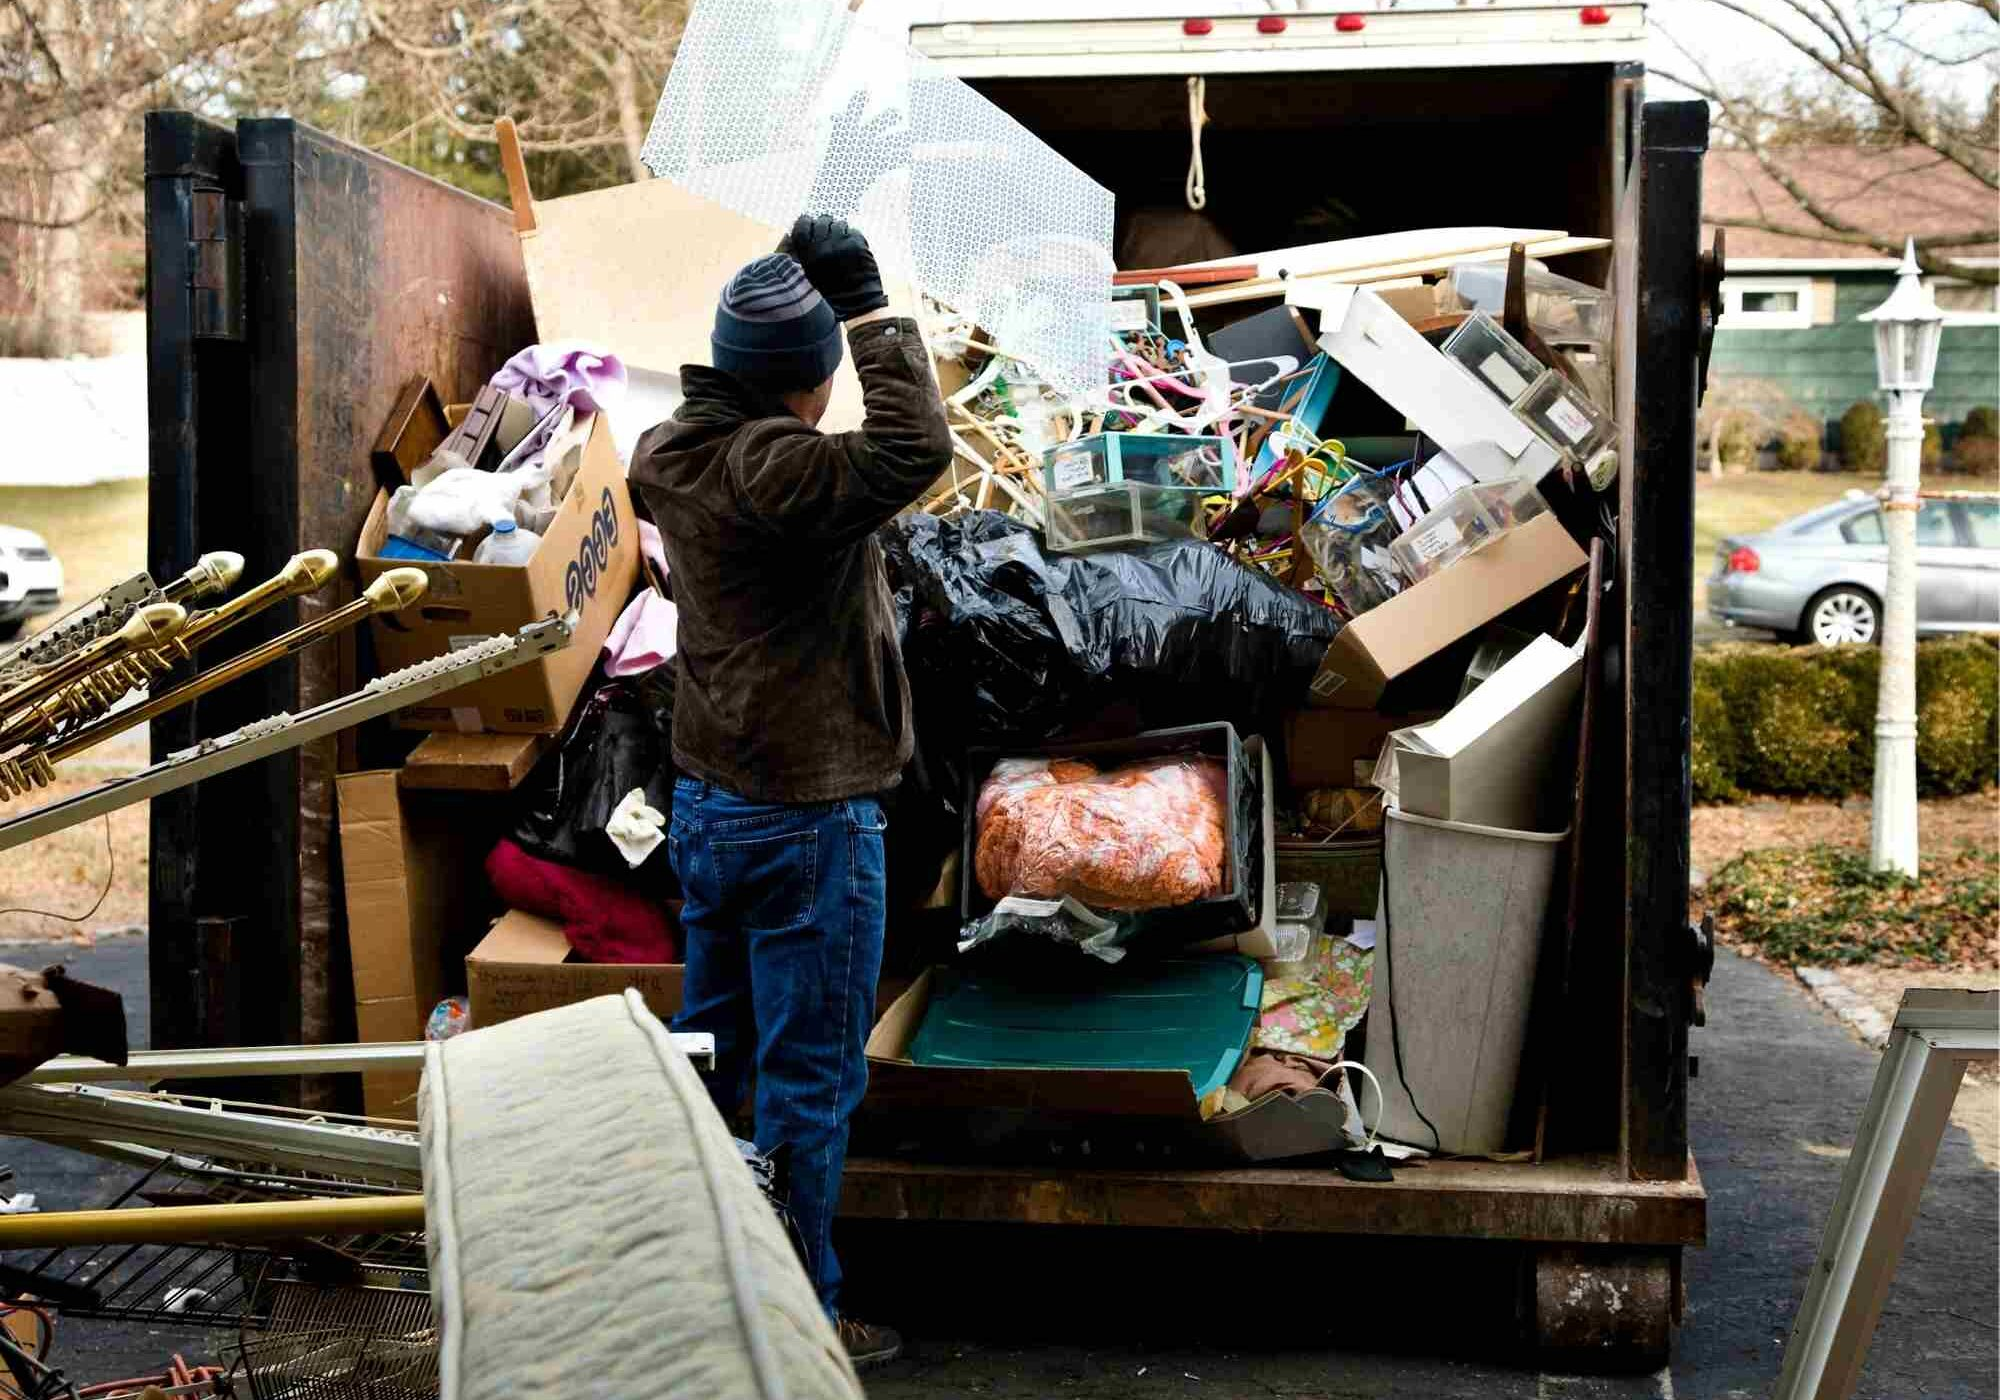 On this image you see a junk removal Brooklyn project is taken place. Junk removal dumpster was delivered to our client to clean up clutter house. Appliances, mattresses and other junk is being hauled away by our dumpster rental company in Brooklyn. The image was taken in April of 2021